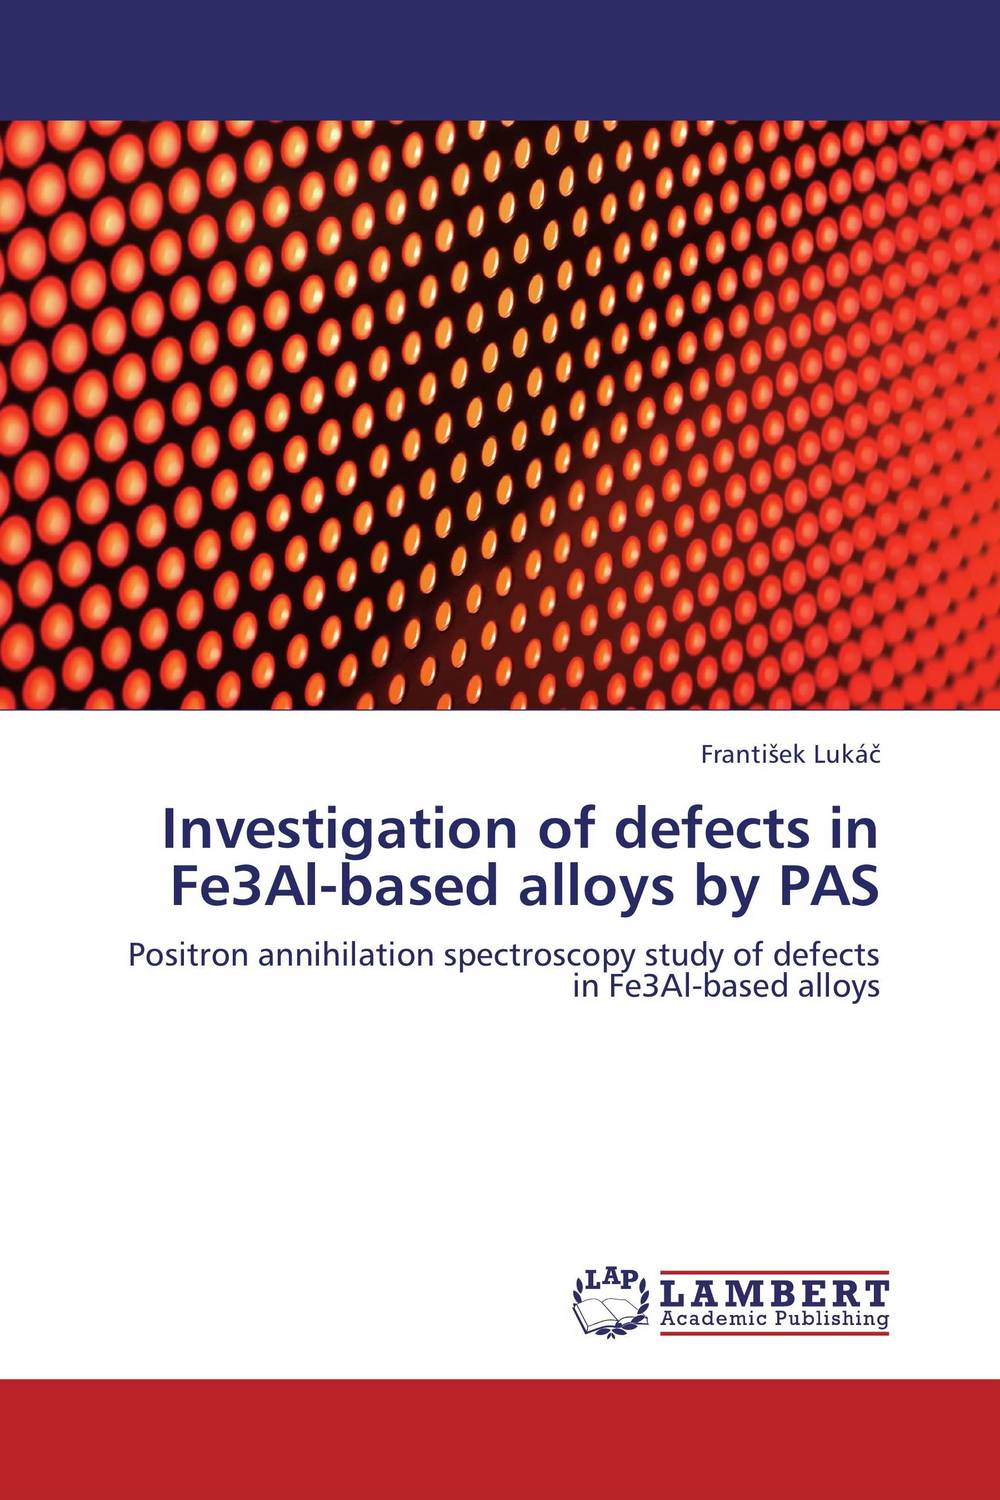 Investigation of defects in Fe3Al-based alloys by PAS